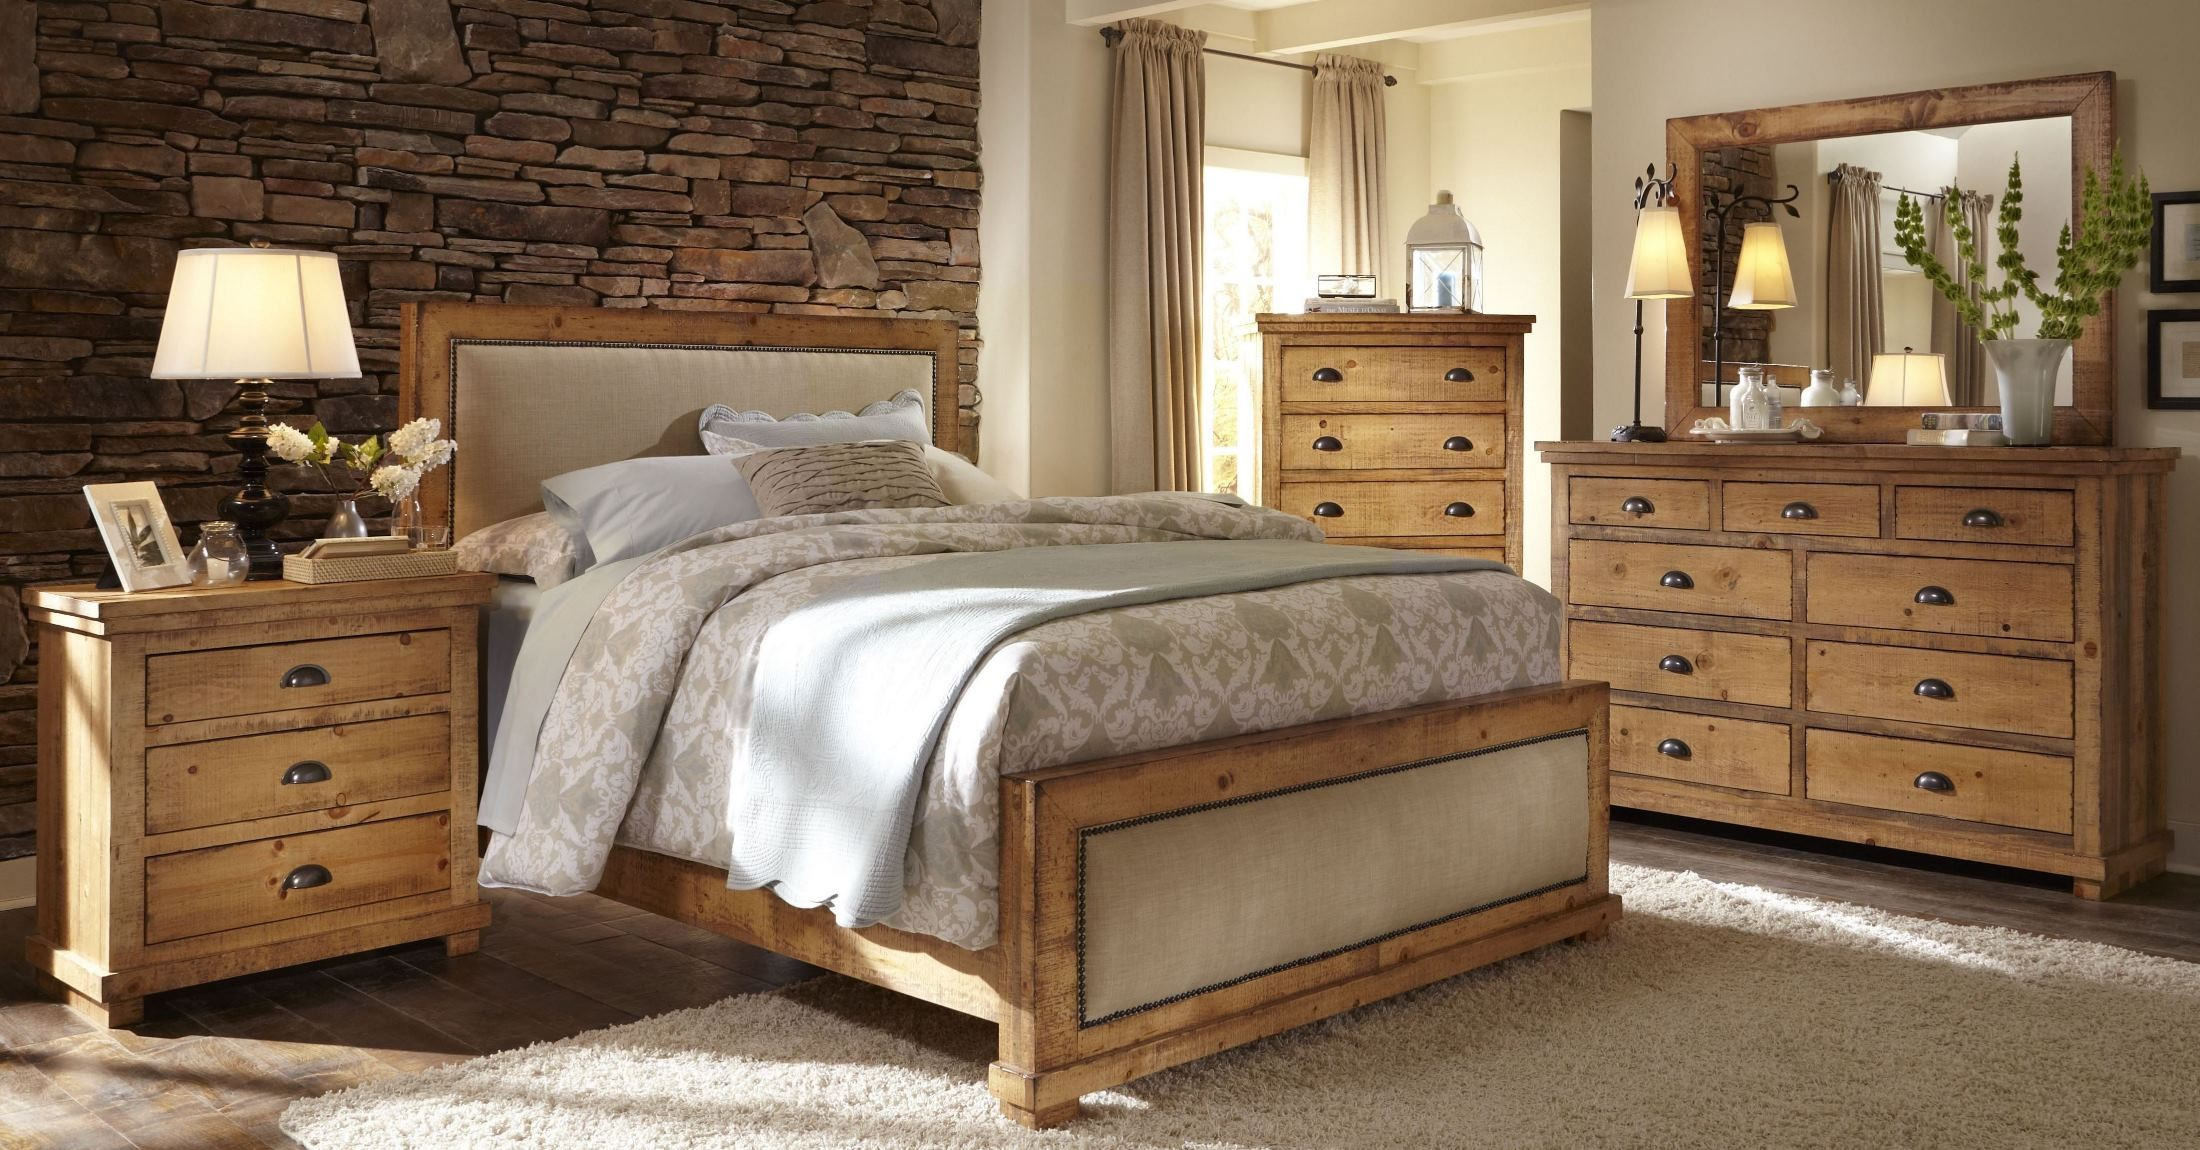 Willow Distressed Pine Upholstered Bedroom Set P608 34 35